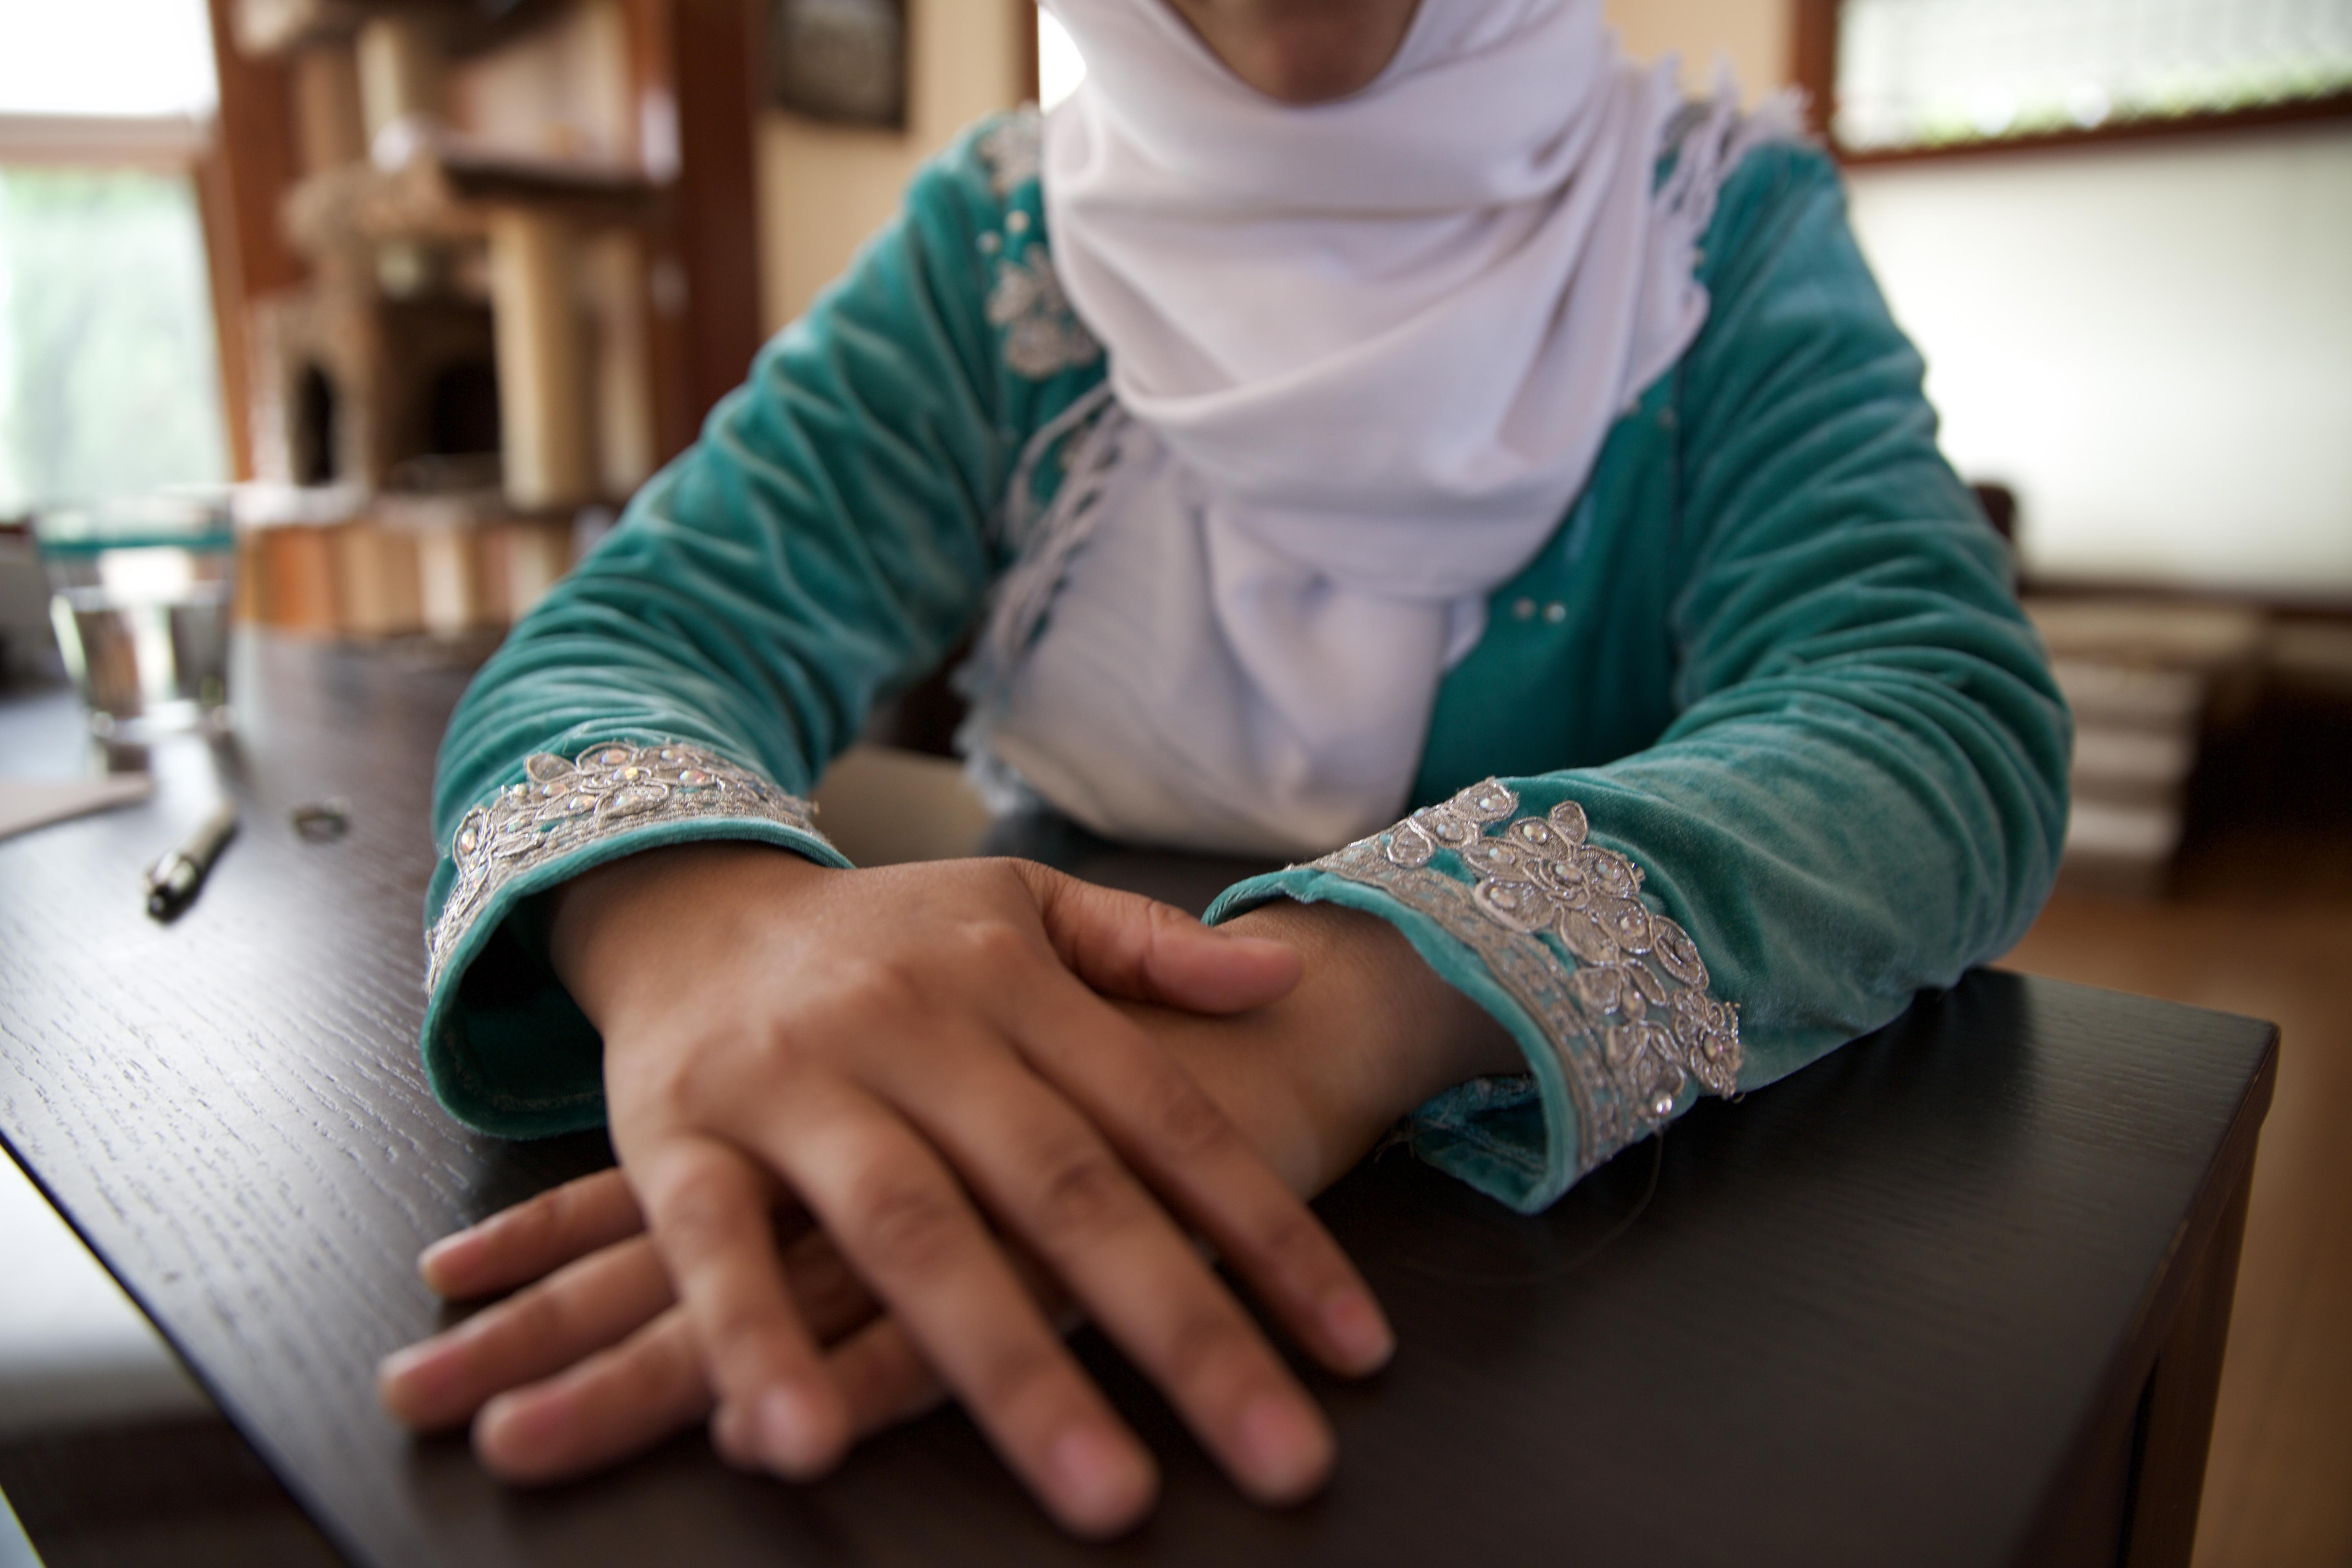 Hassania, a Muslim immigrant from Morocco, said her visit to Portland for a program on female empowerment was soured by an experience she had with someone on the street.